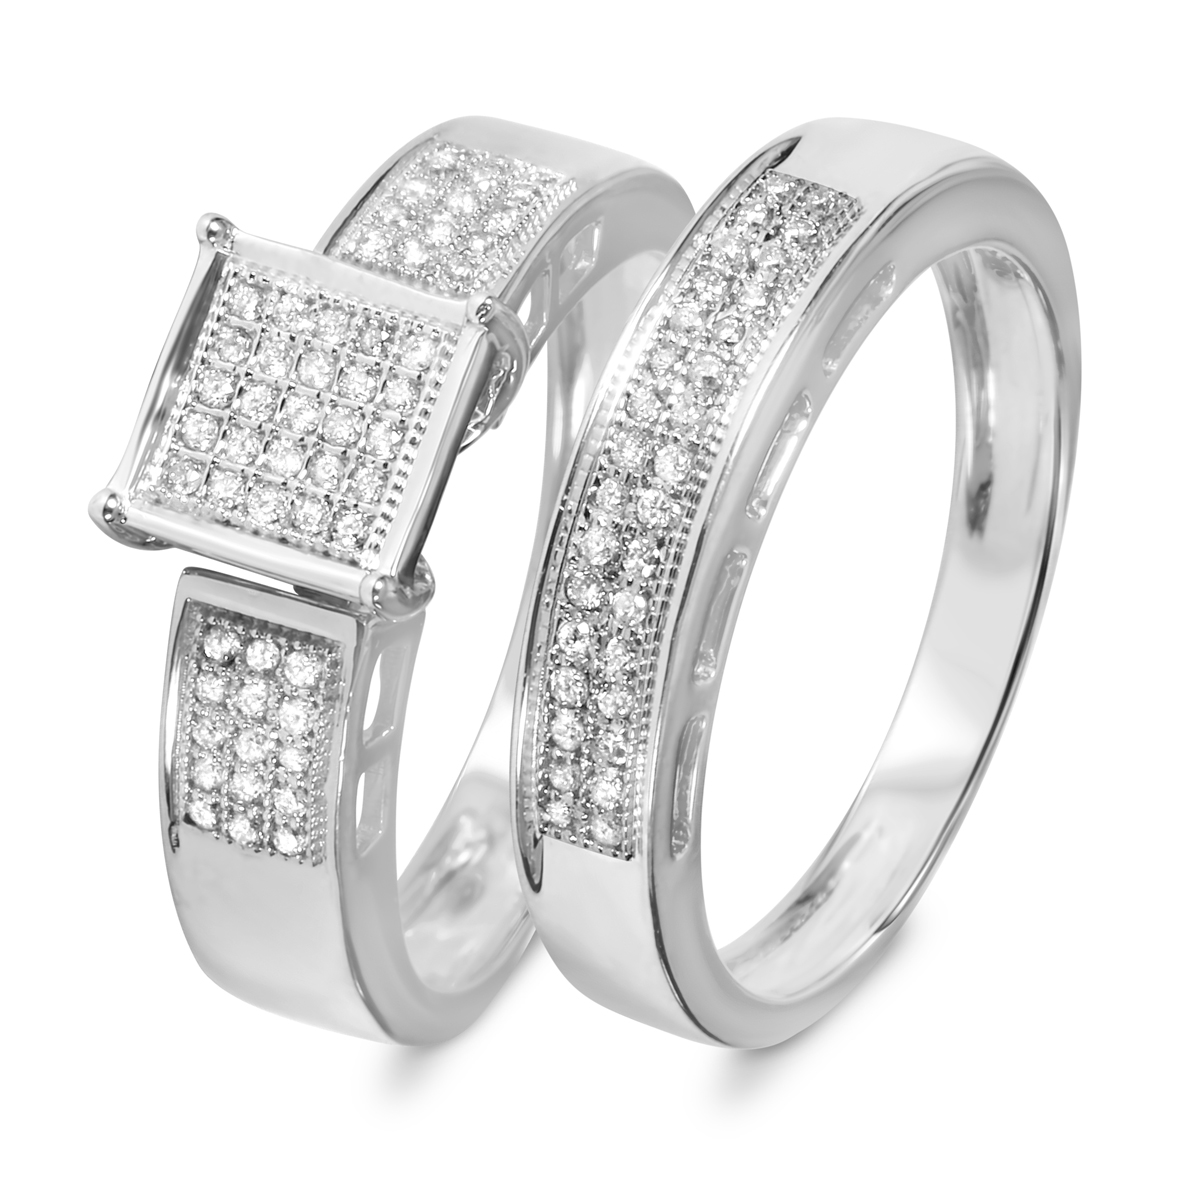 1/4 Carat Diamond Bridal Wedding Ring Set 14K White Gold